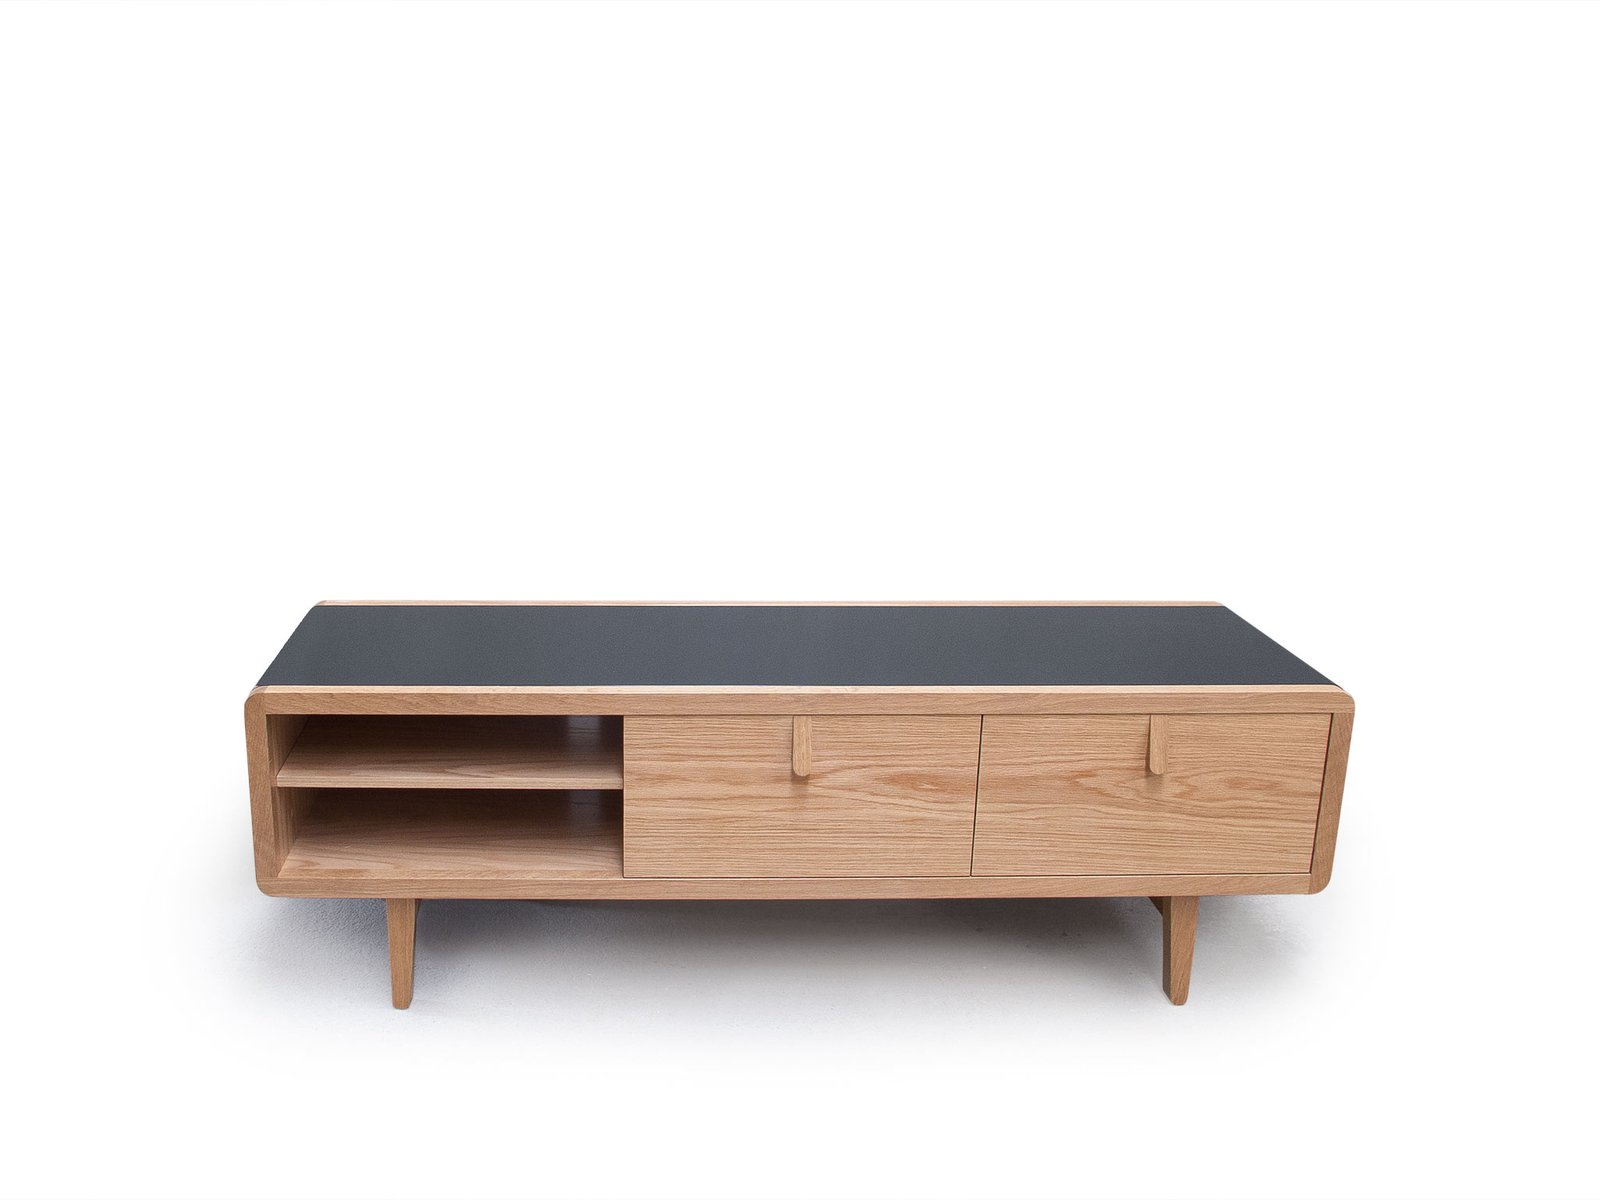 Little antoinette v2 0 oak sideboard from piurra for sale for Sideboard 2 m breit